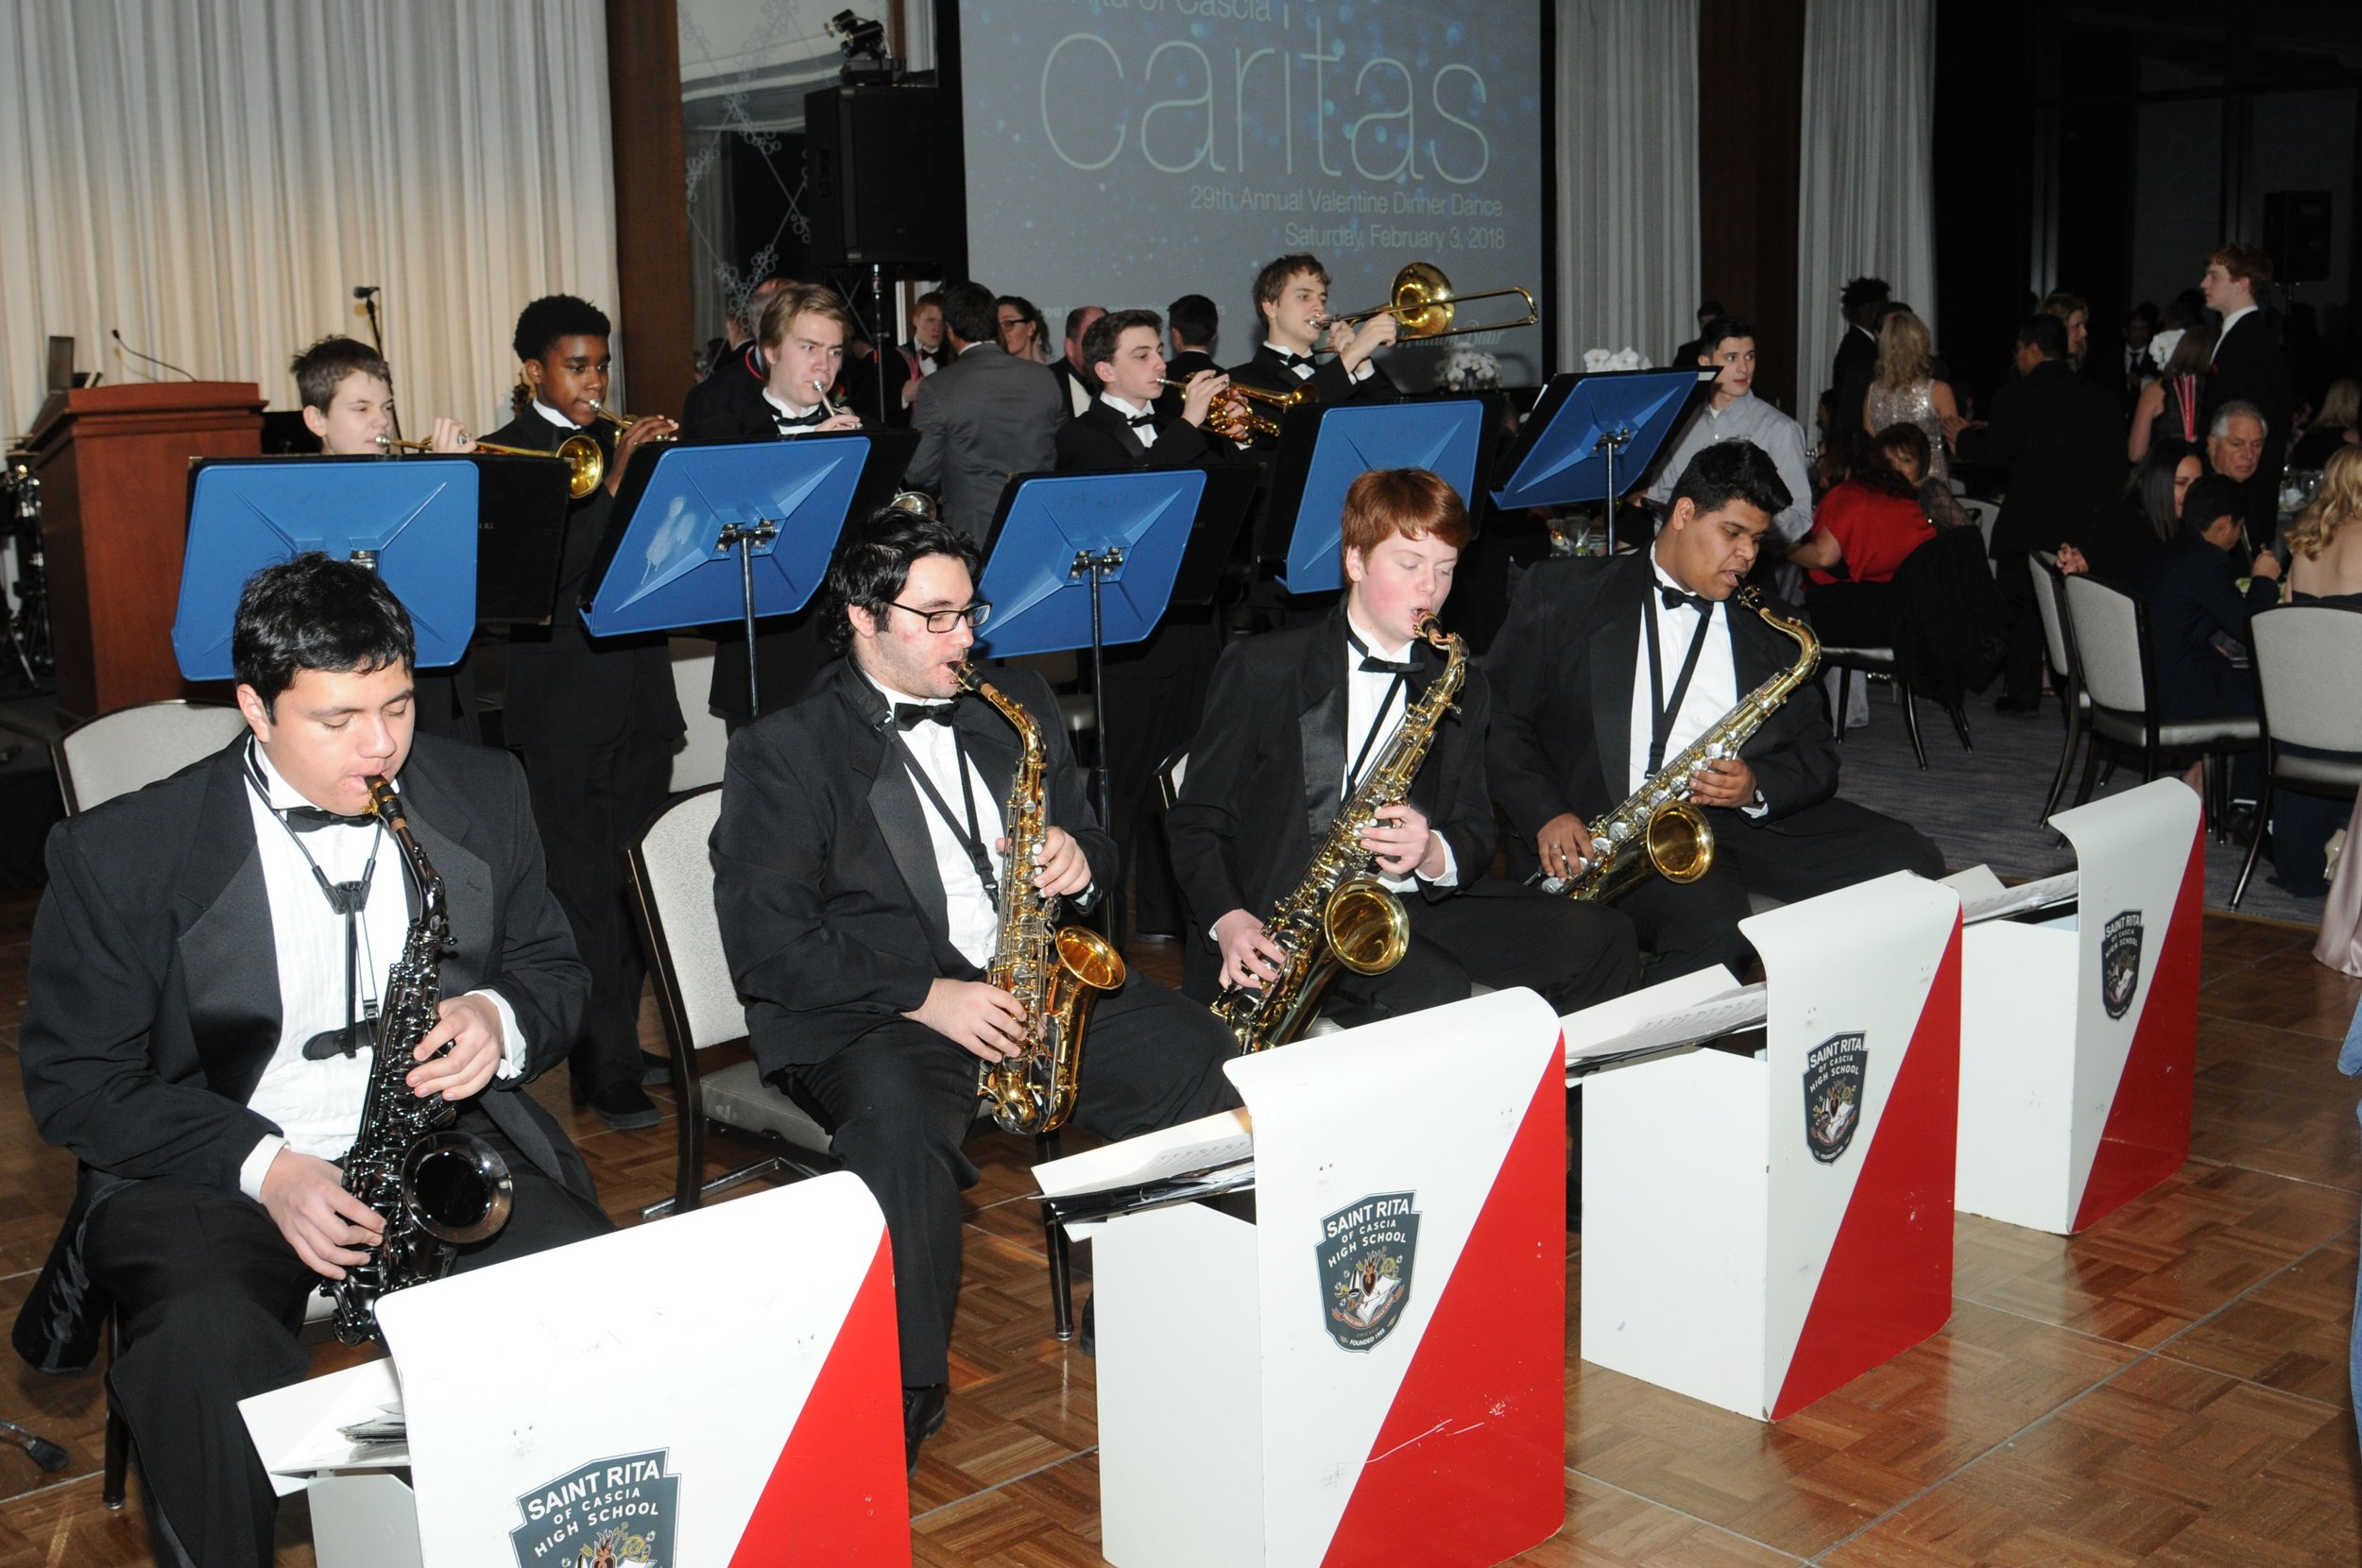 The St. Rita Jazz Band entertains the crowd.